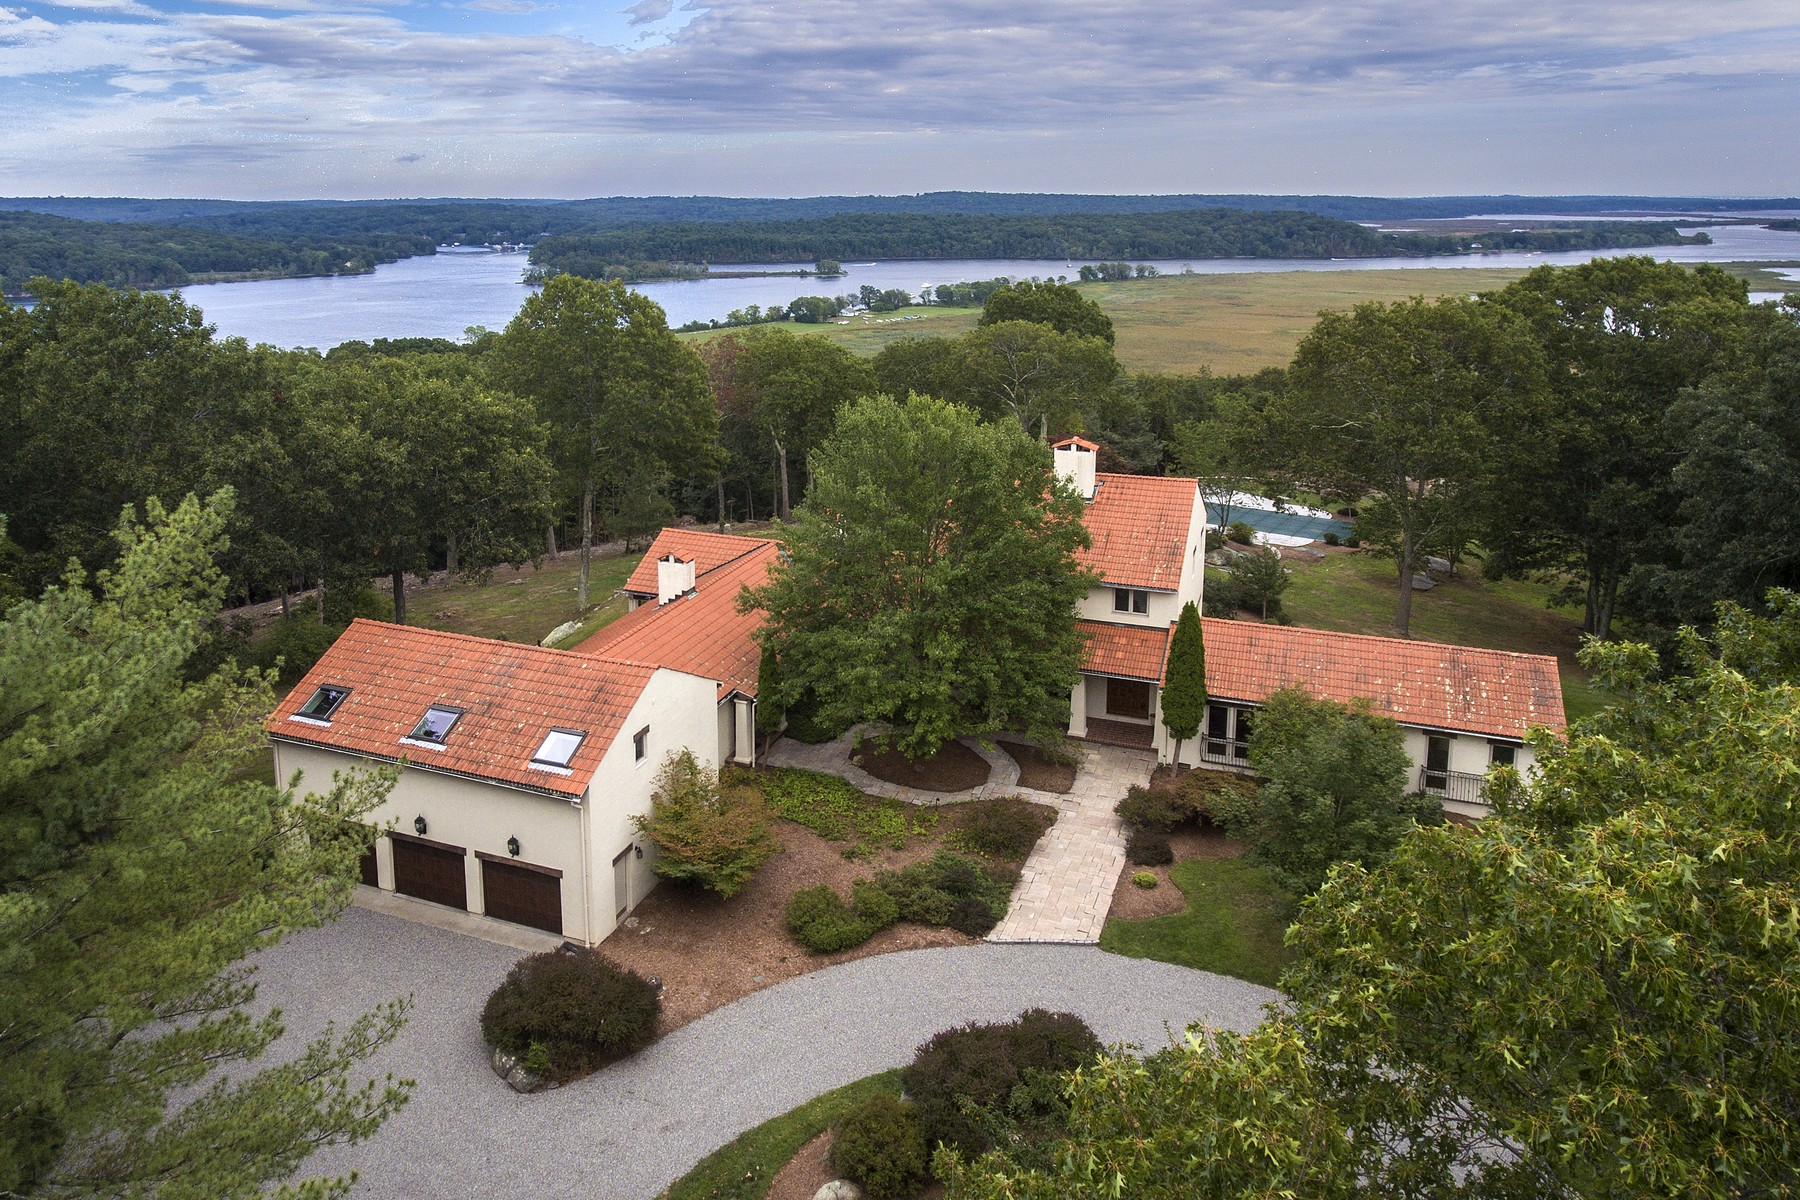 Casa Unifamiliar por un Venta en Extraordinary European Designed Home on 10+ Acres 120 River Road Essex, Connecticut 06426 Estados Unidos